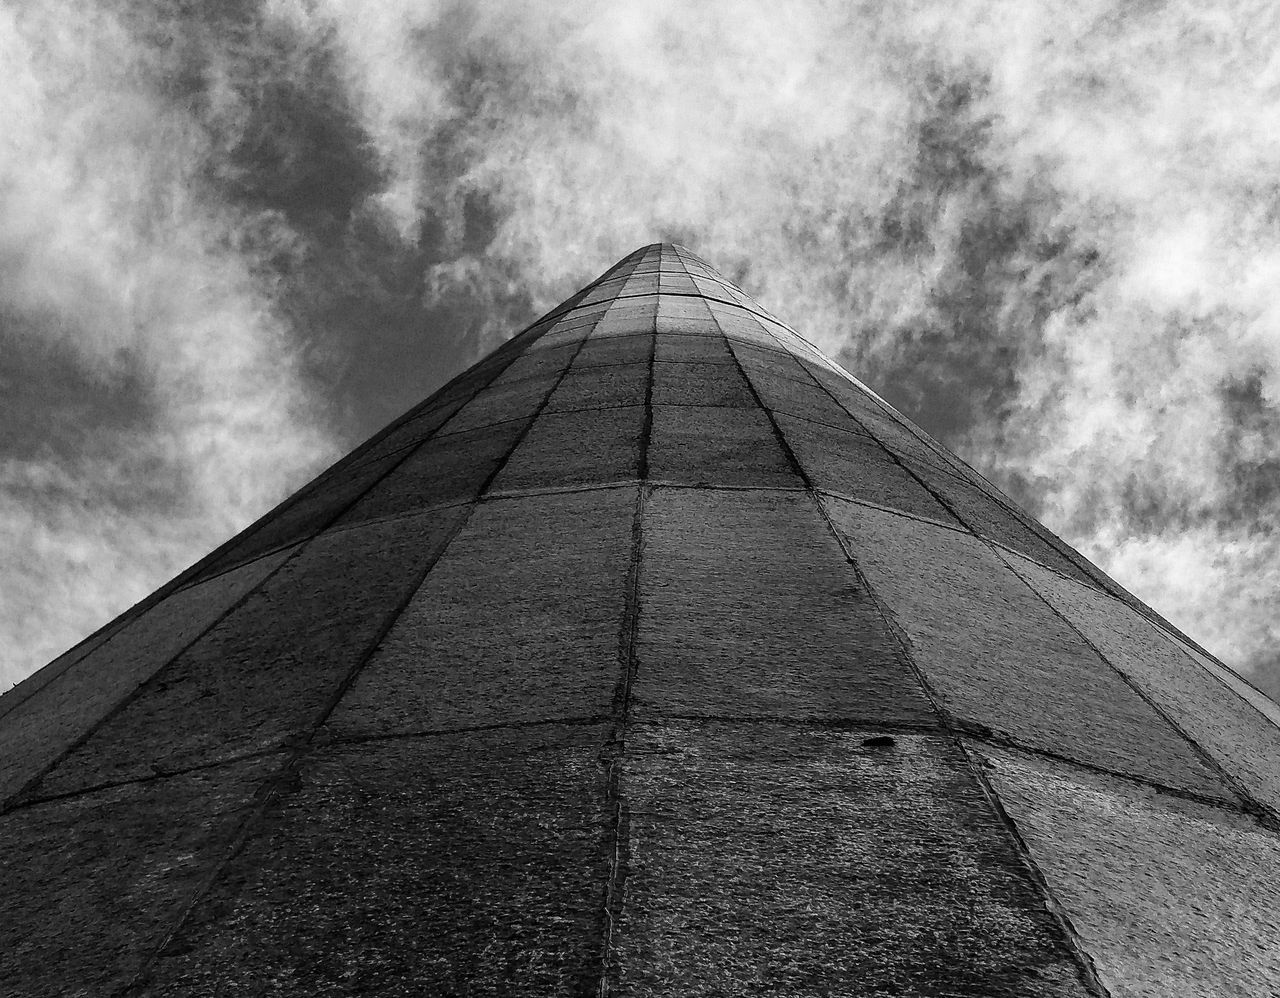 Architectural Looking Up Built Structure Architecture Sky Building Exterior Cloud - Sky Low Angle View Outdoors Day No People Bw_ Collection Black And White Bw_collection Monochrome Bw BW Collection Monochrome Photography Monochrome _ Collection